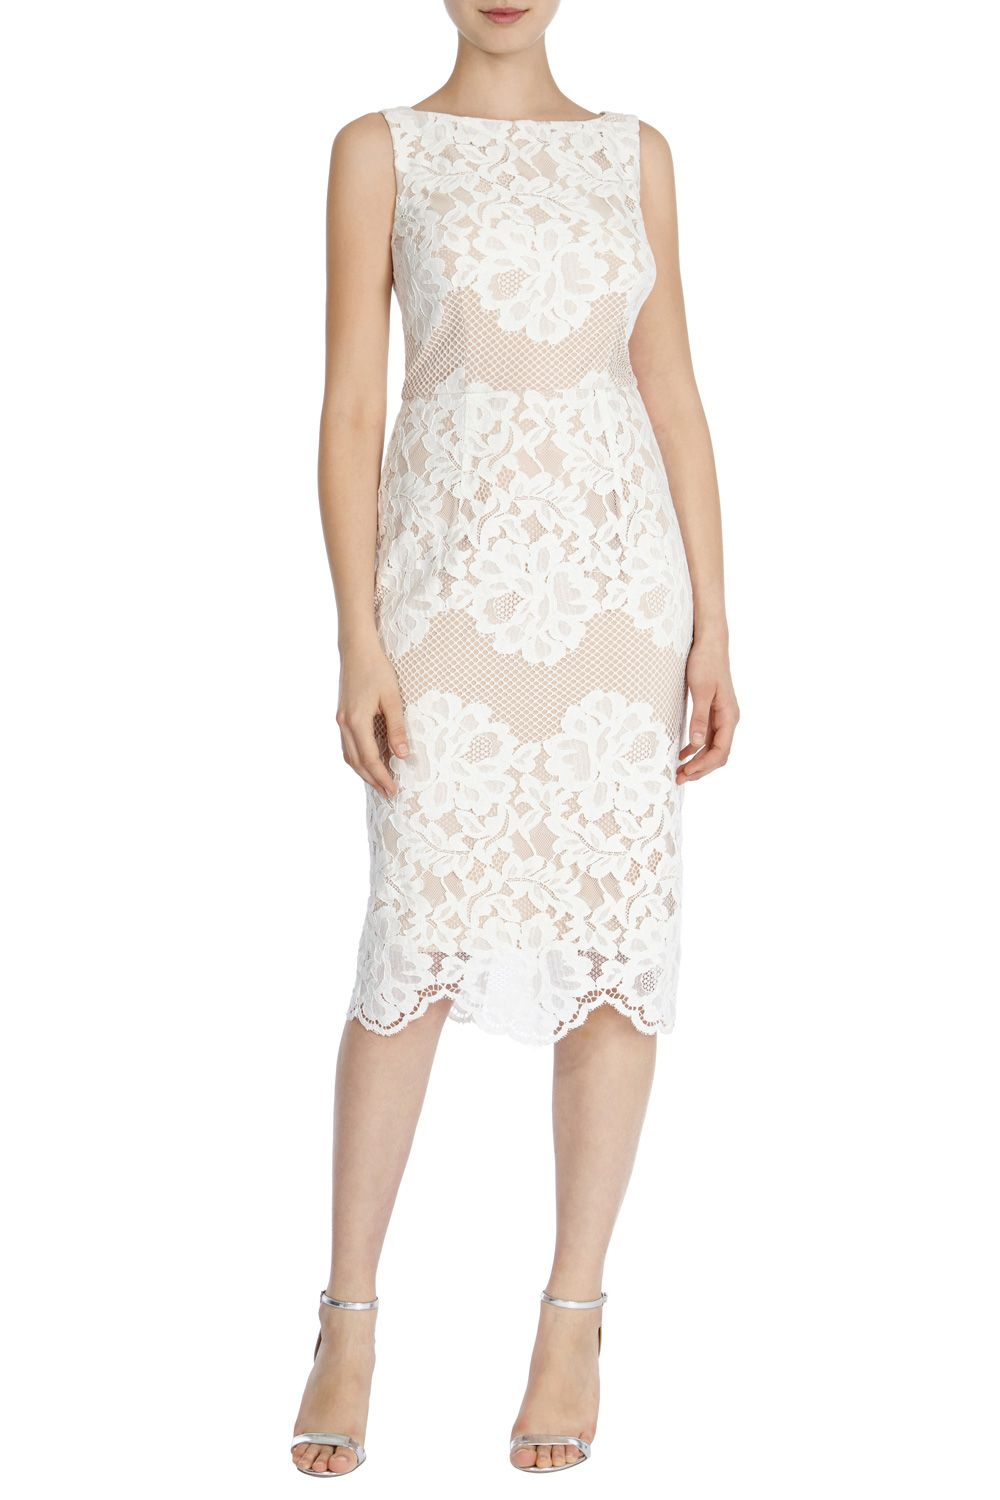 MOISELLE LACE SHIFT DRESS